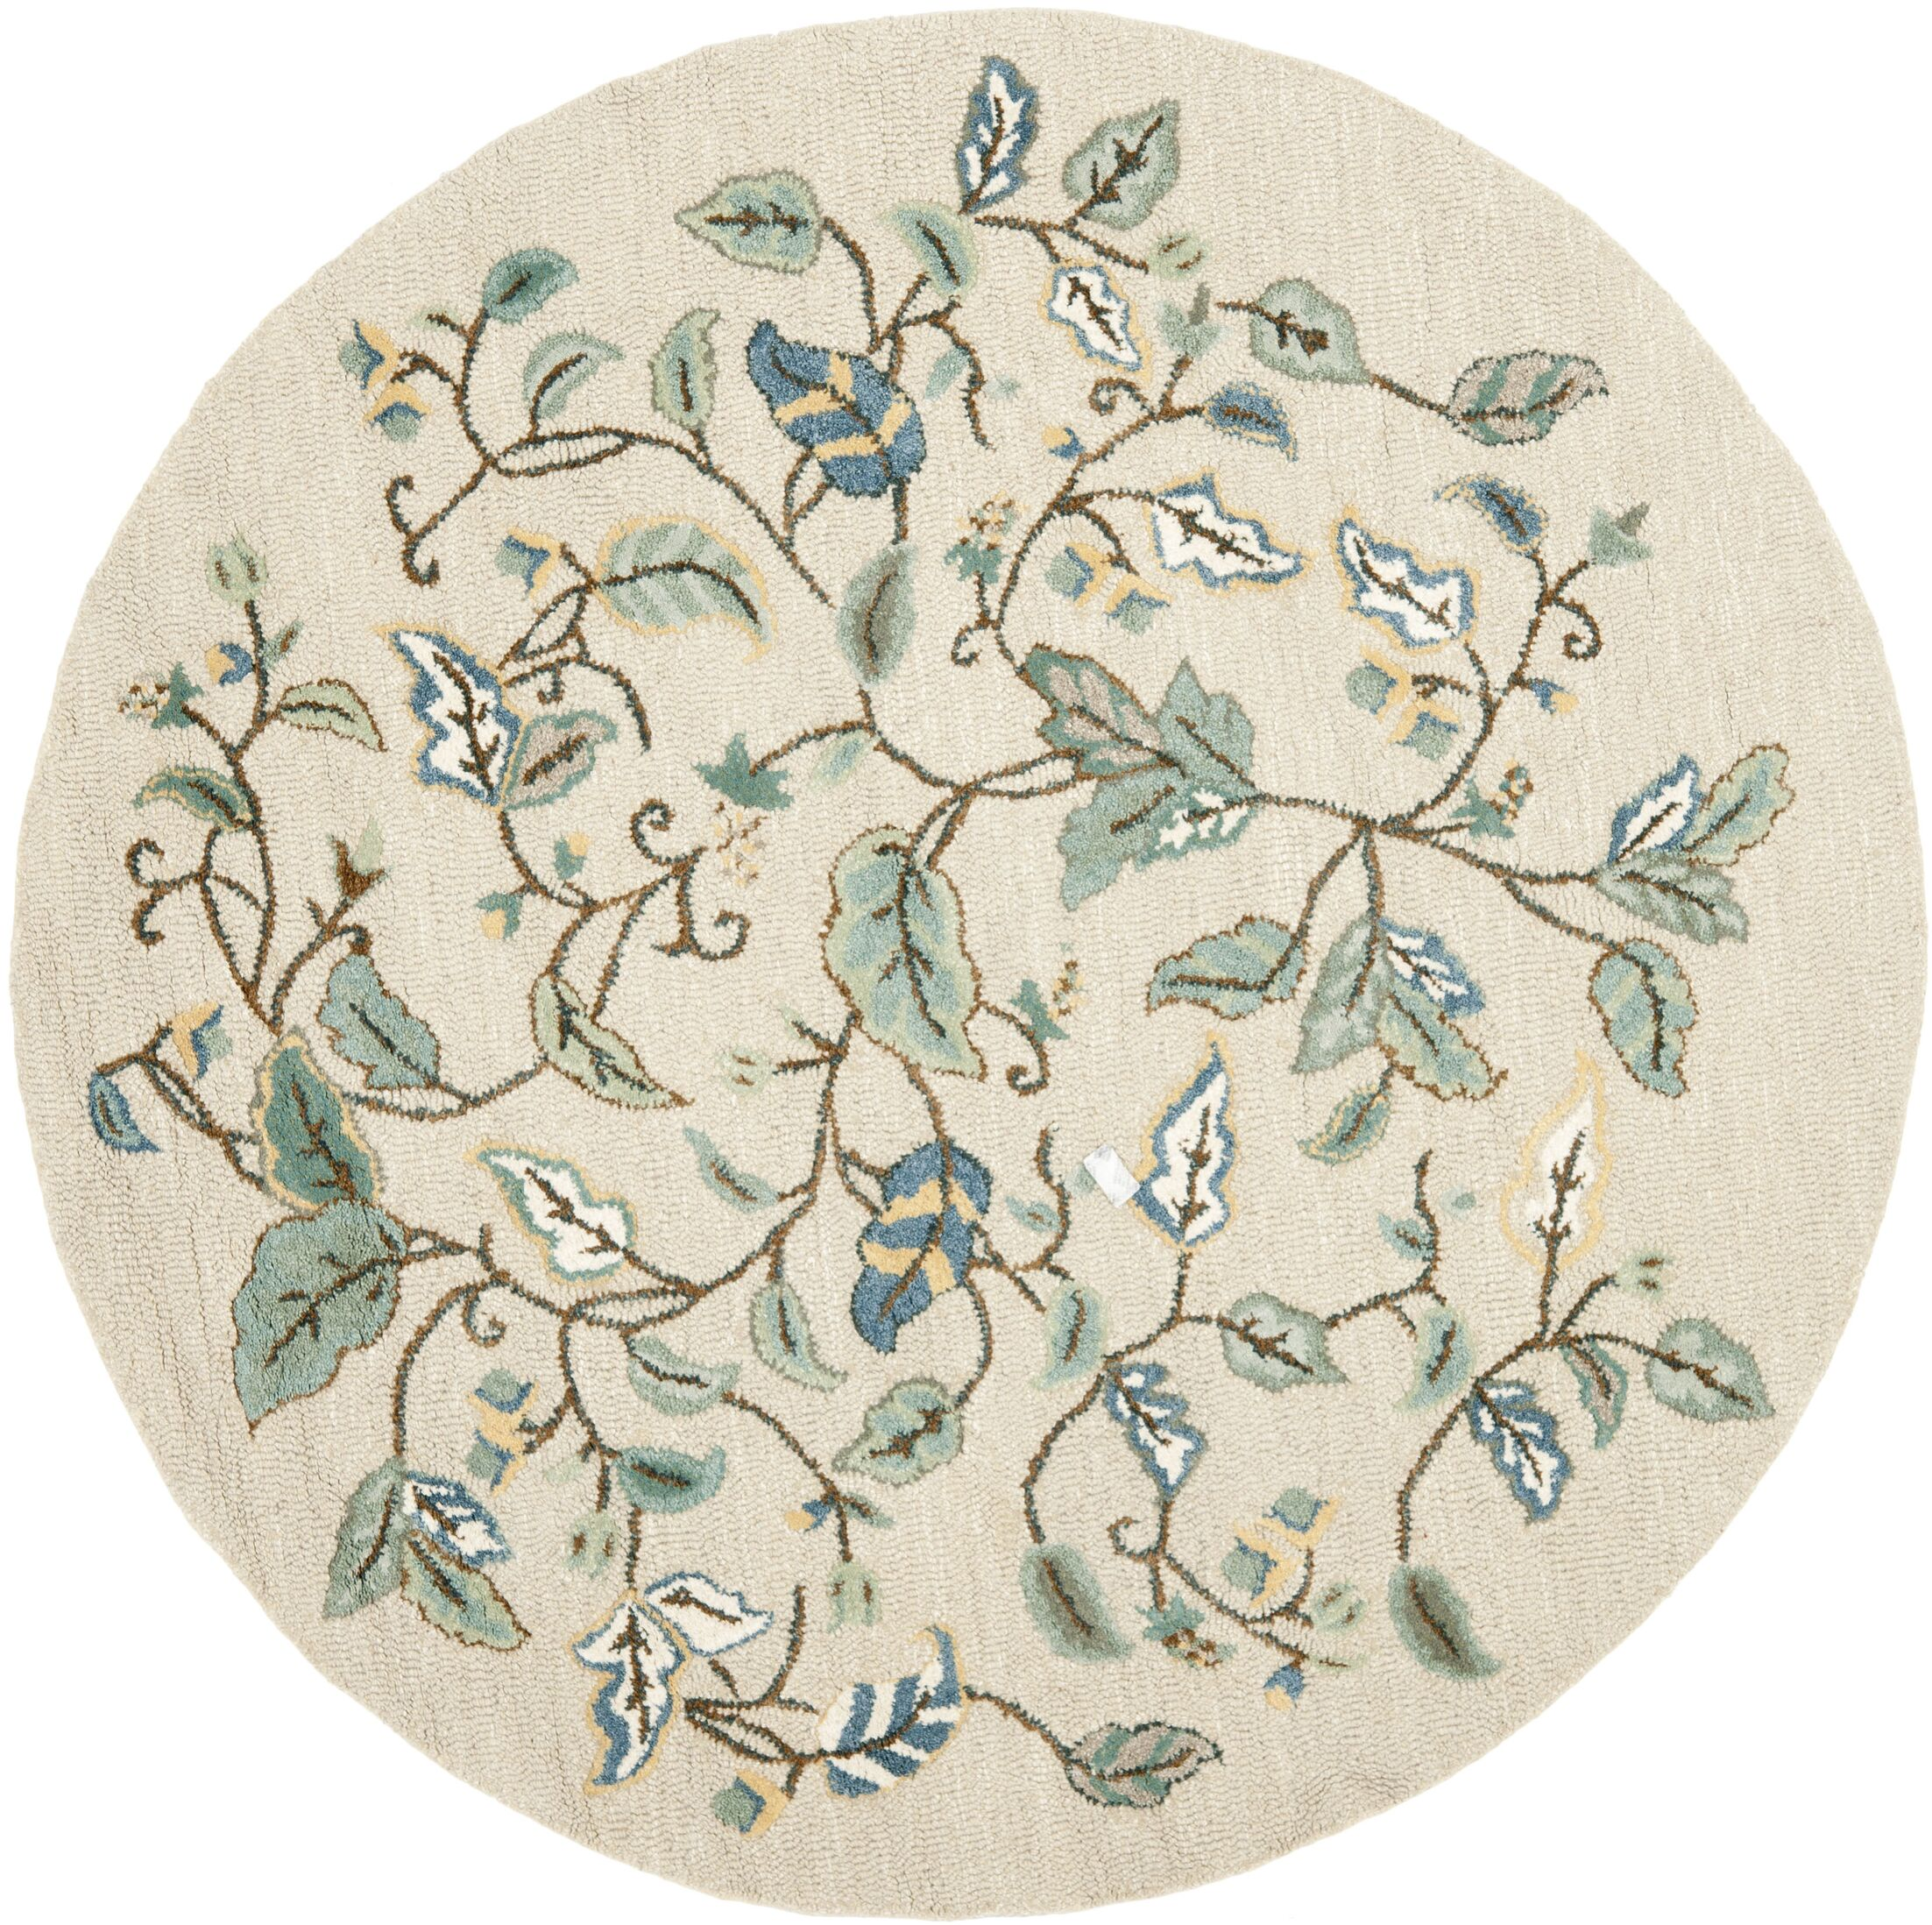 Autumn Woods Hand-Tufted Colonial Blue Area Rug Rug Size: Round 6' x 6'